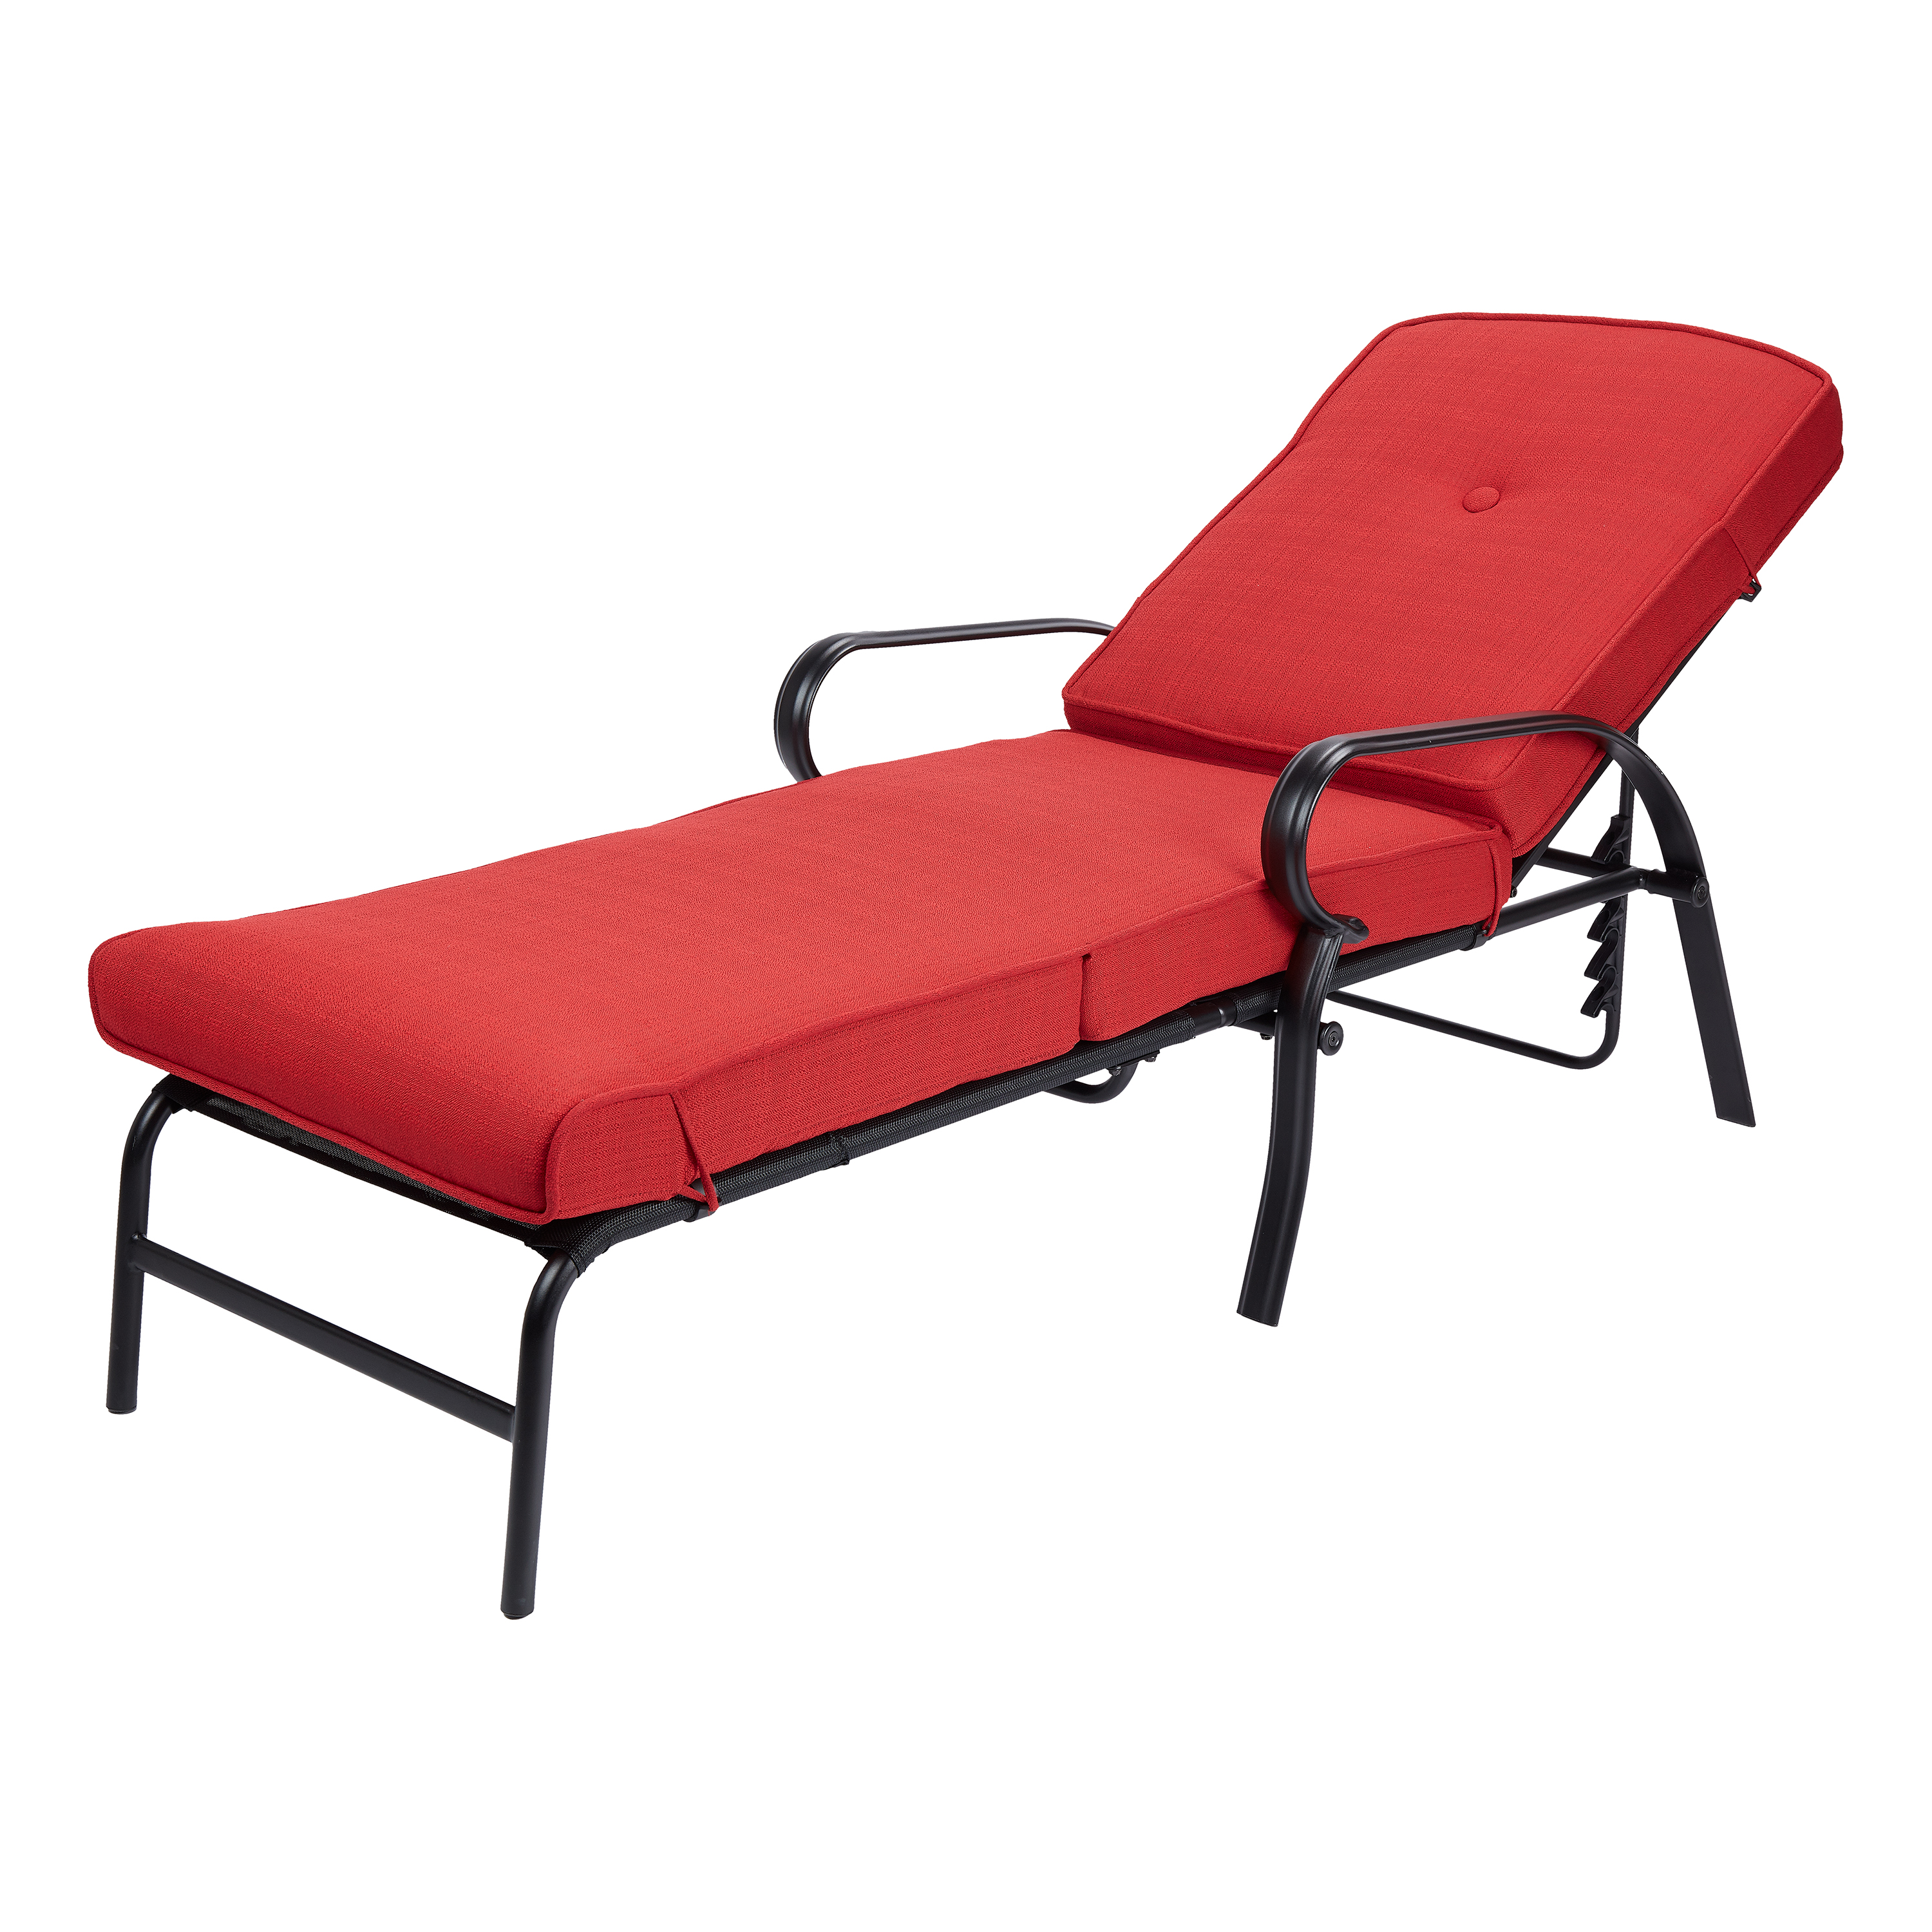 Mainstays Carson Creek Outdoor Chaise Lounge with Brick Red Cushions